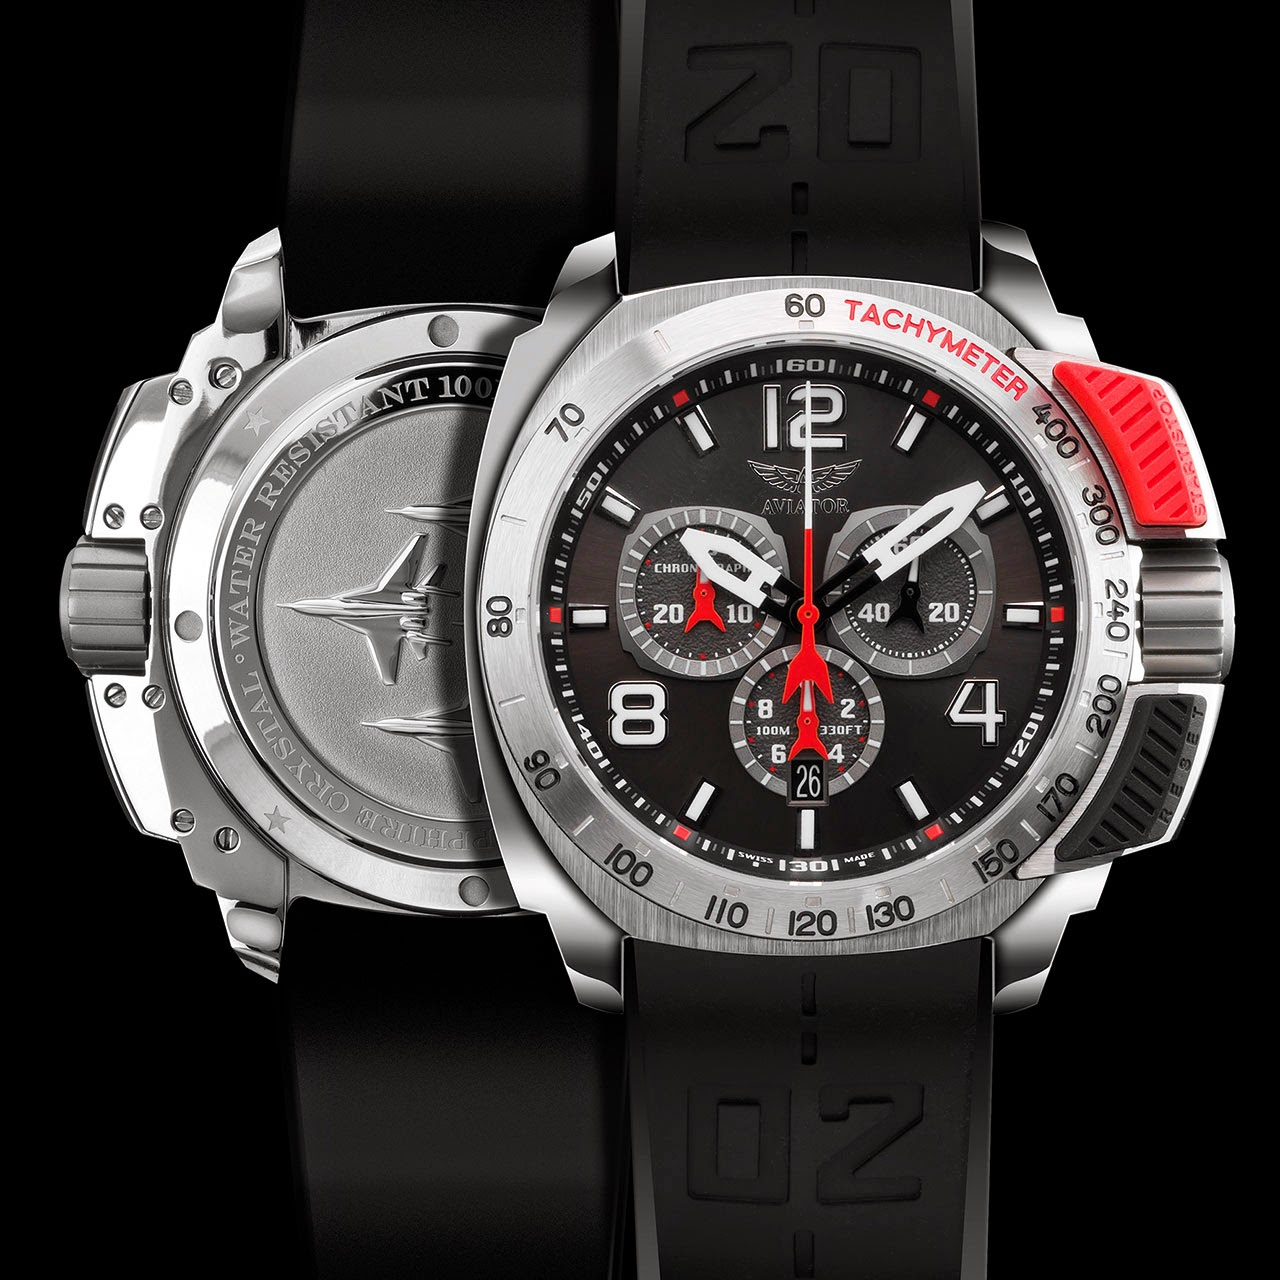 Aviator Professional Edition Chronograph Watch